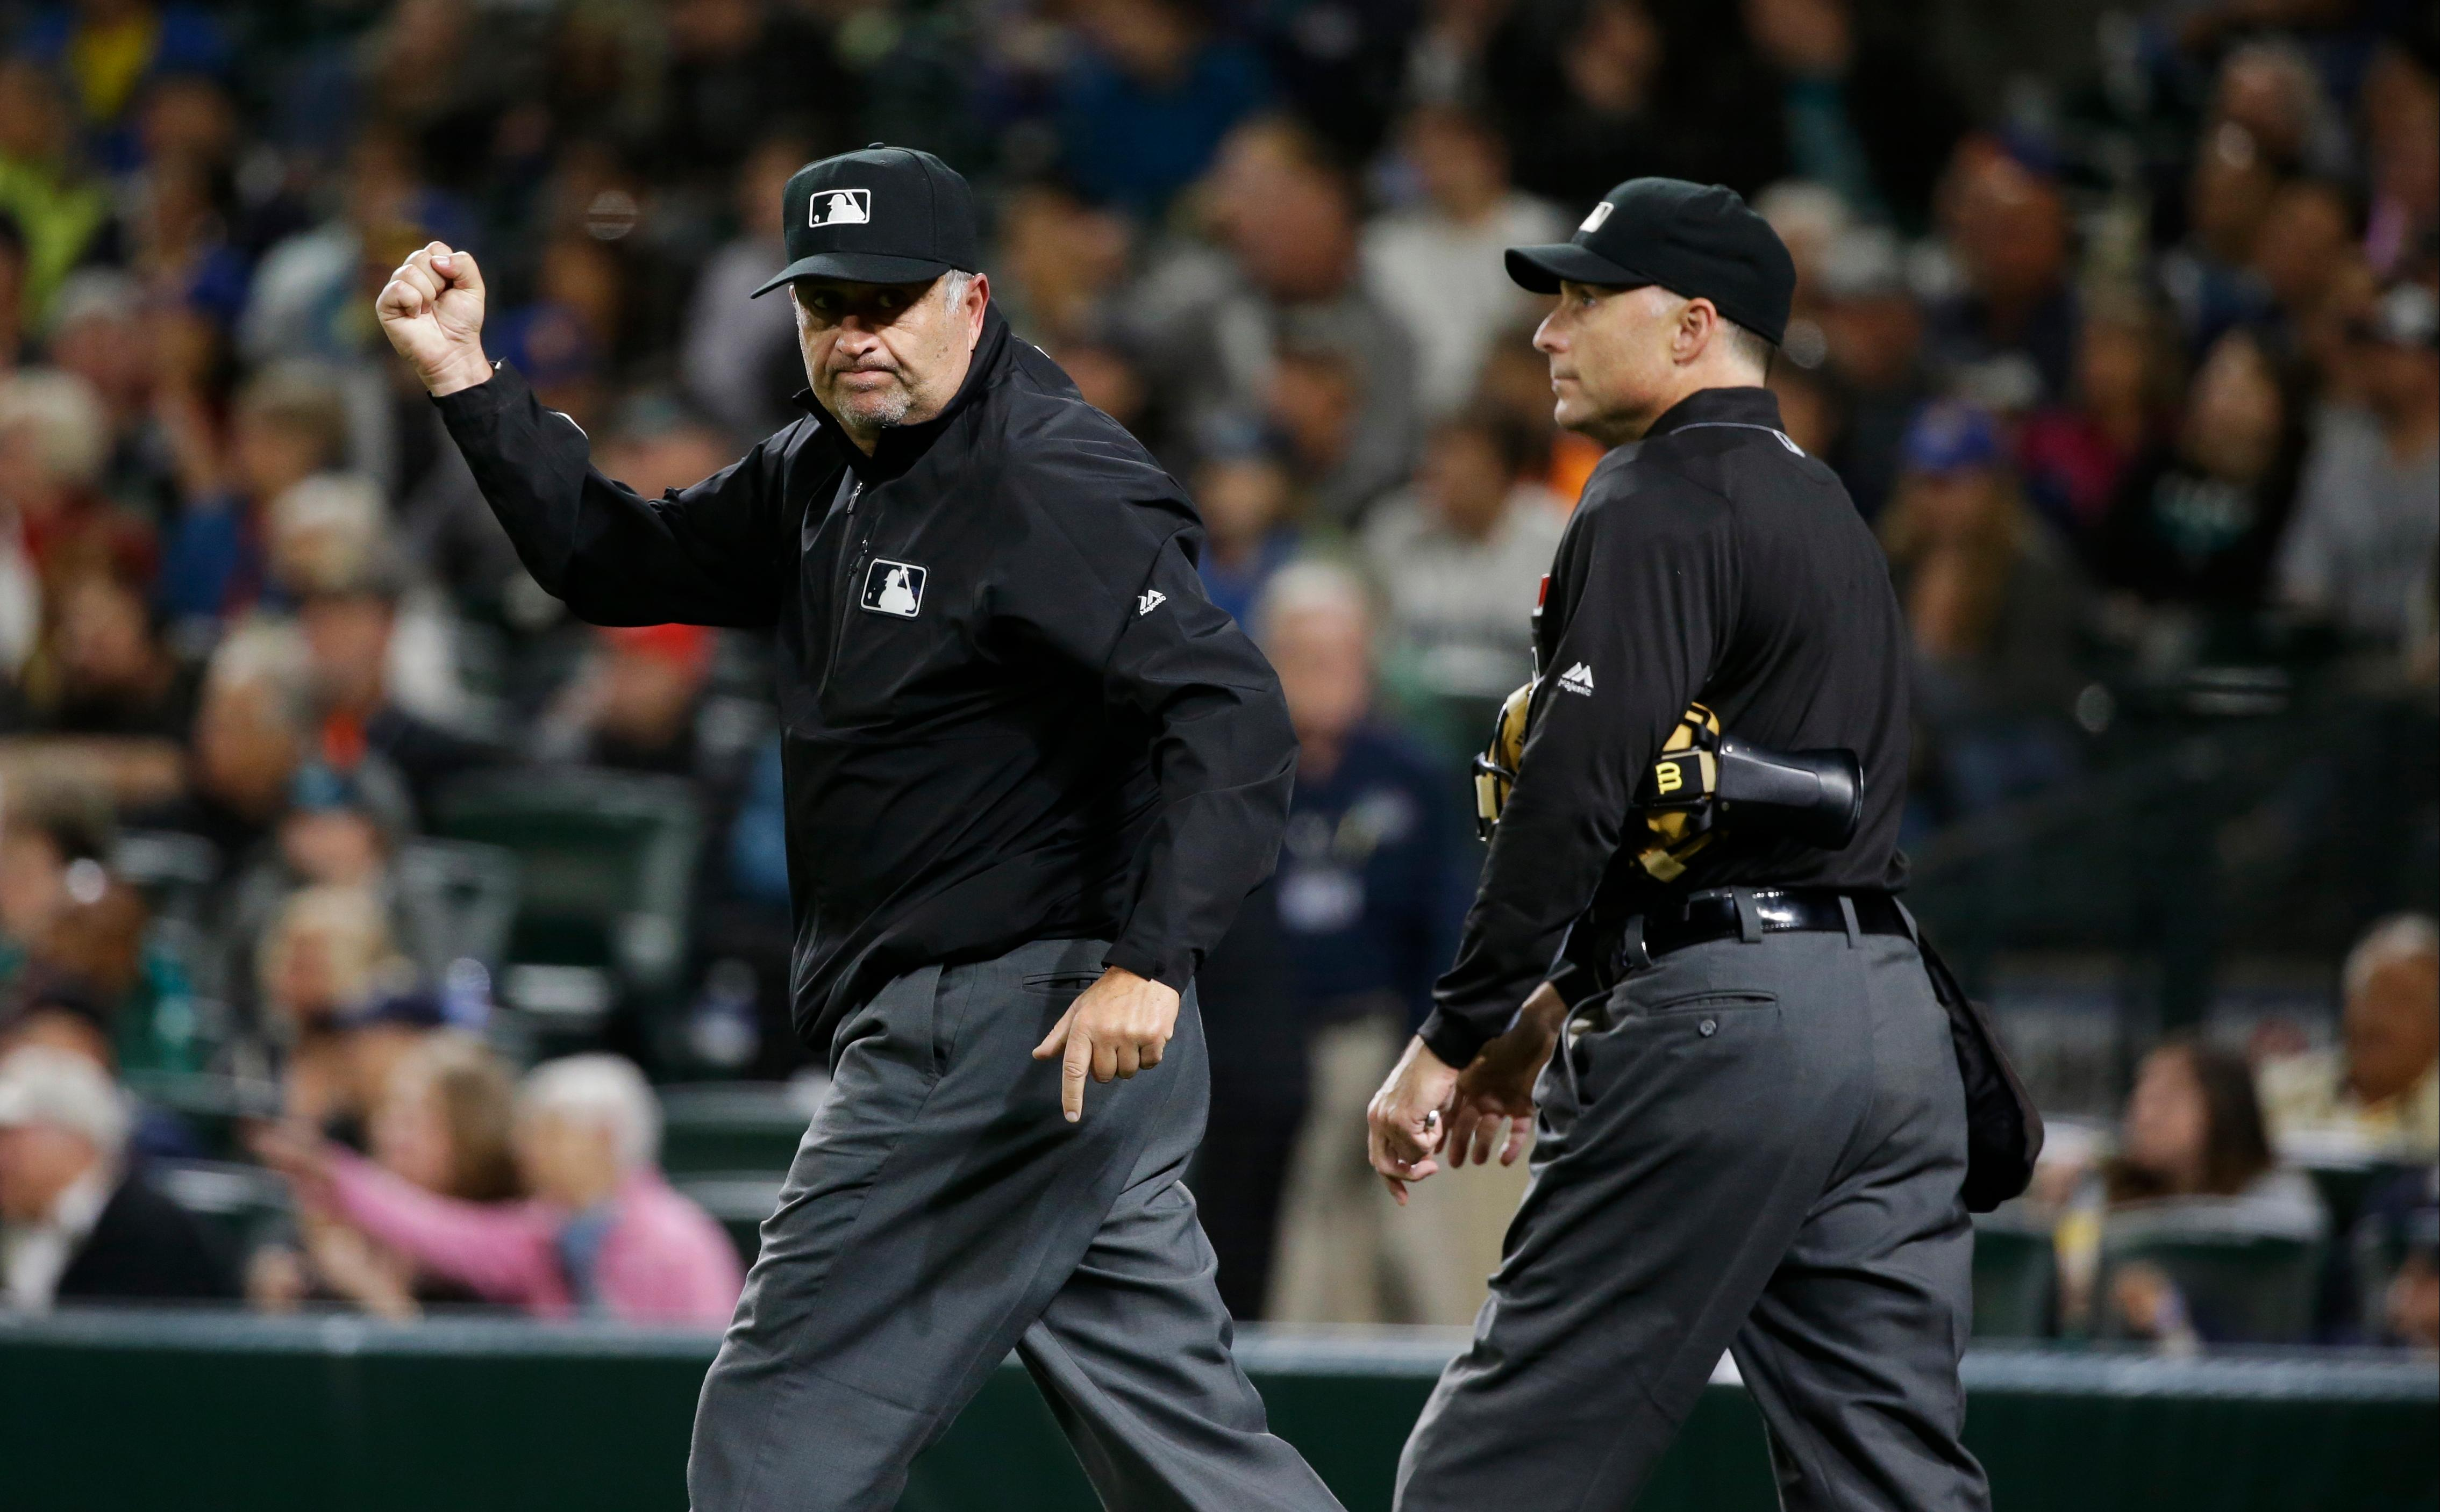 FILE - In this Sept. 8, 2016, file photo, first base umpire Dale Scott, left, signals an out next to home plate umpire Dan Iassogna, right, during a baseball game between the Seattle Mariners and the Texas Rangers in Seattle. Rather than risk yet another concussion, Scott has decided to retire at 58. The veteran crew chief missed nearly the entire 2017 season after a foul ball off the bat of Baltimore slugger Mark Trumbo in Toronto on April 14, caught him hard in the mask, causing Scott's second concussion in nine months and fourth in five years. (AP Photo/Ted S. Warren, File)